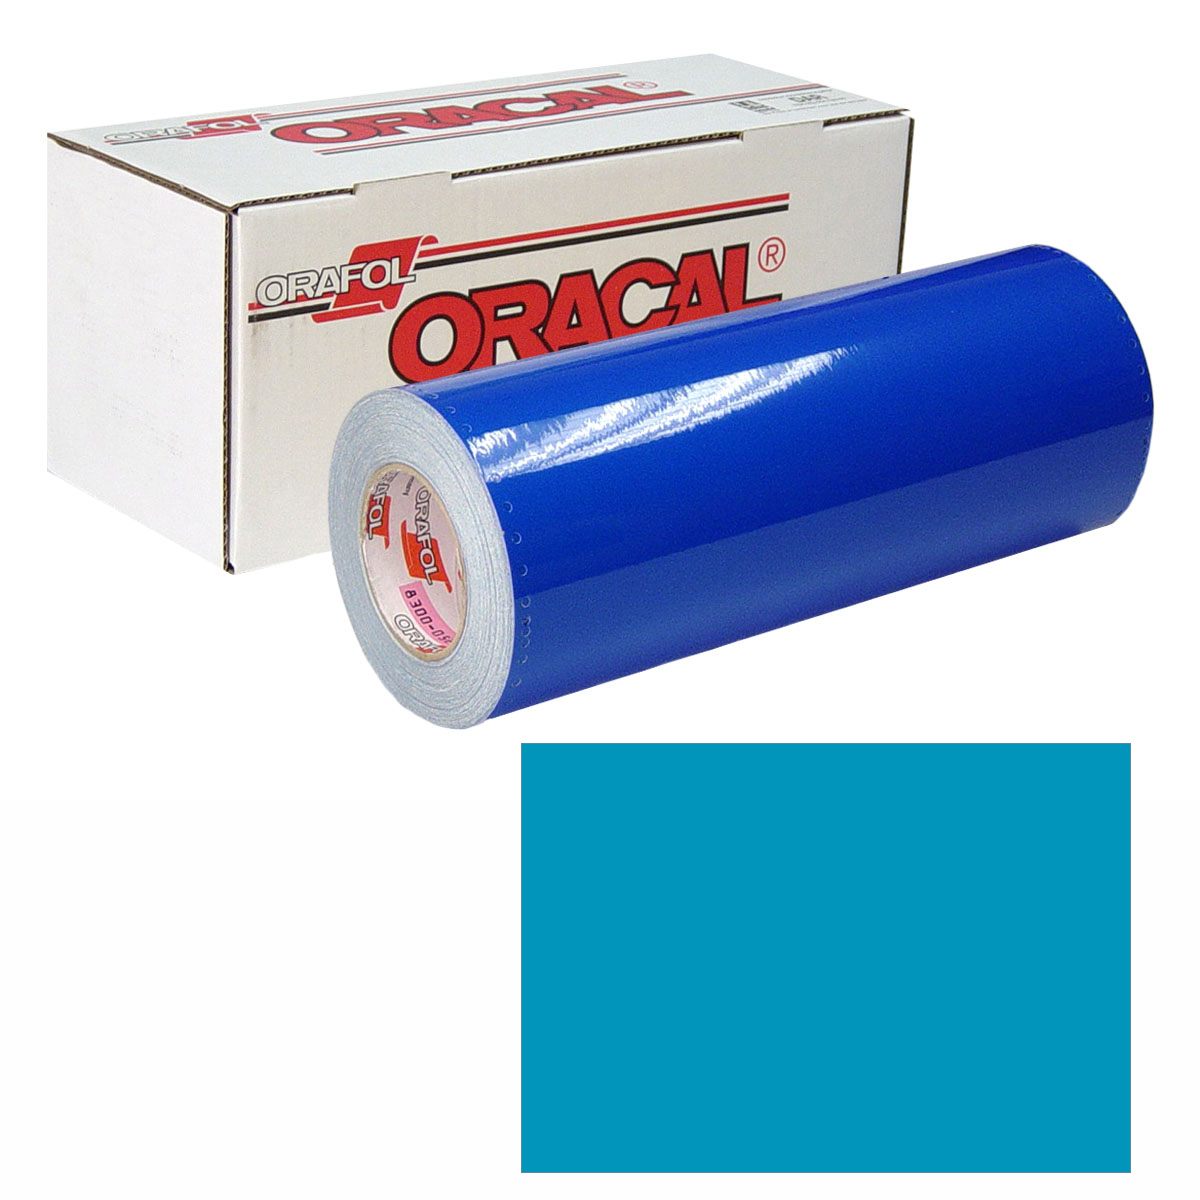 ORACAL 631 Unp 24in X 10yd 174 Teal